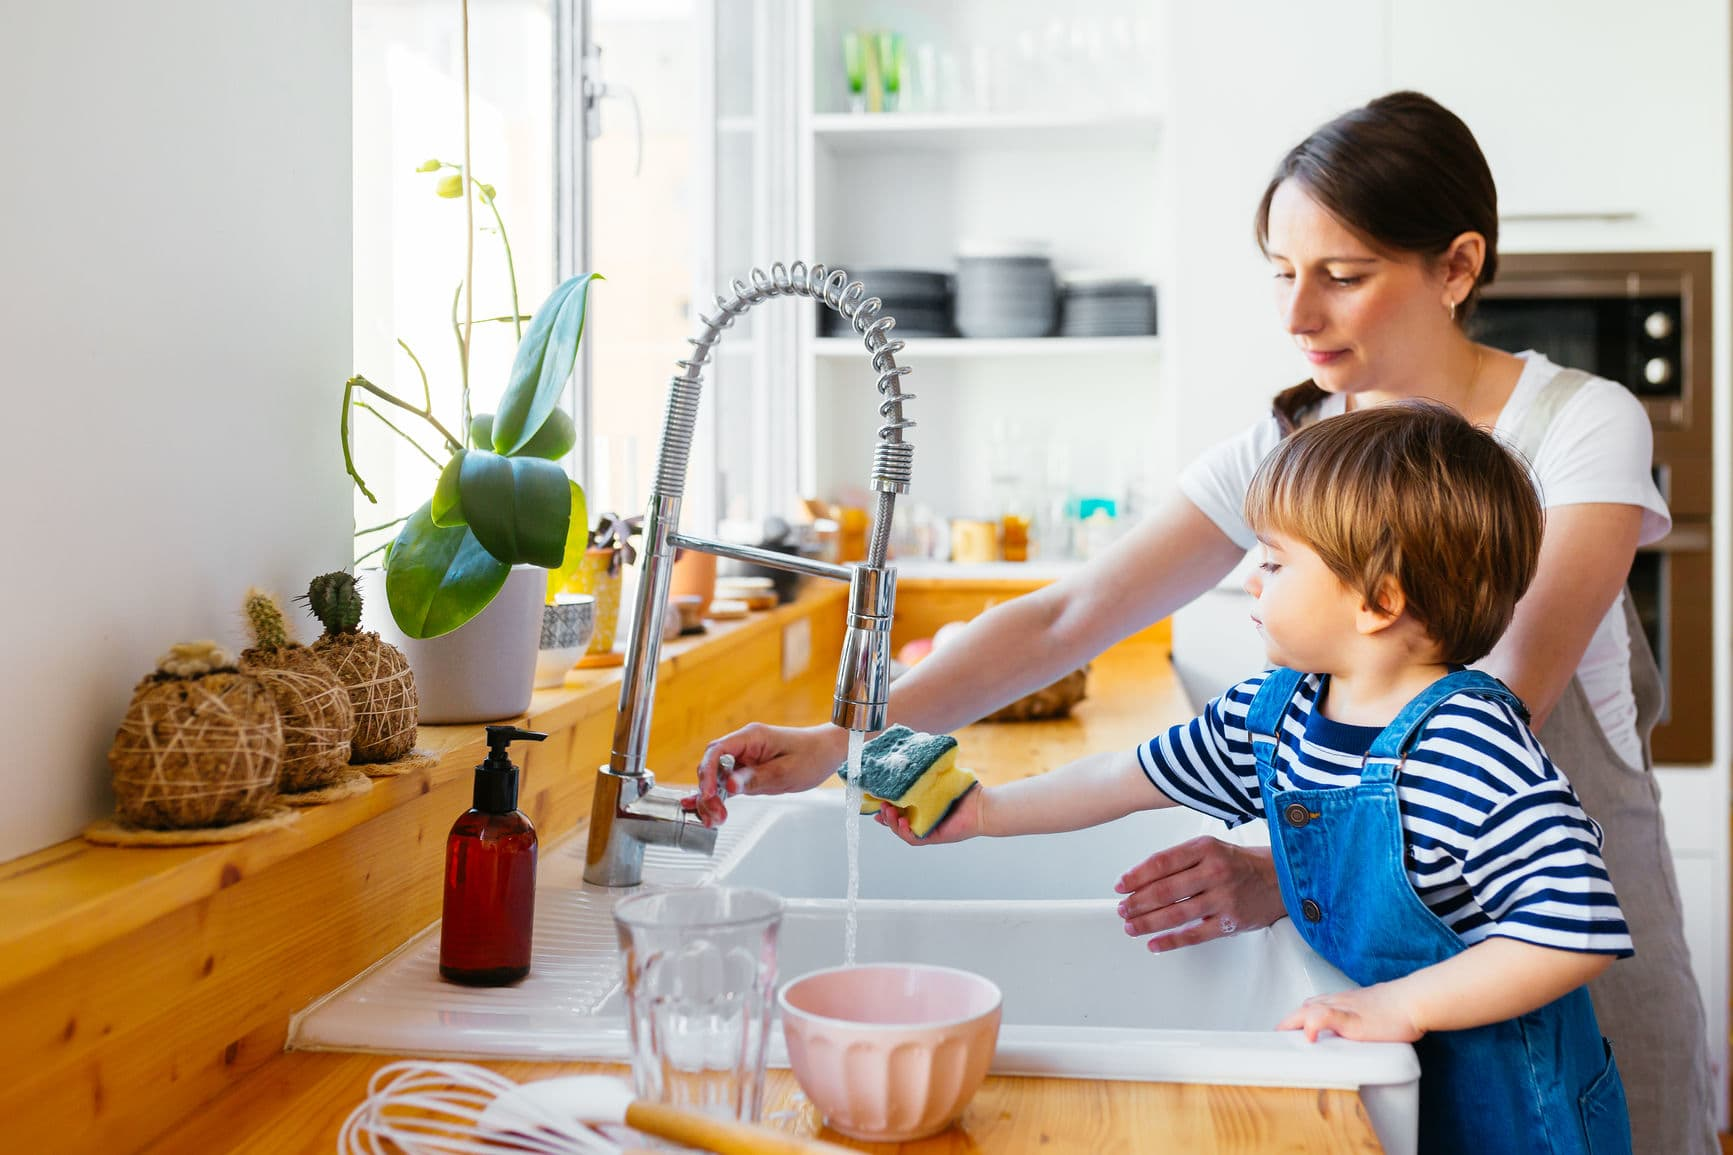 The Cleaning Mistakes You Might Not Even Realize You're Making